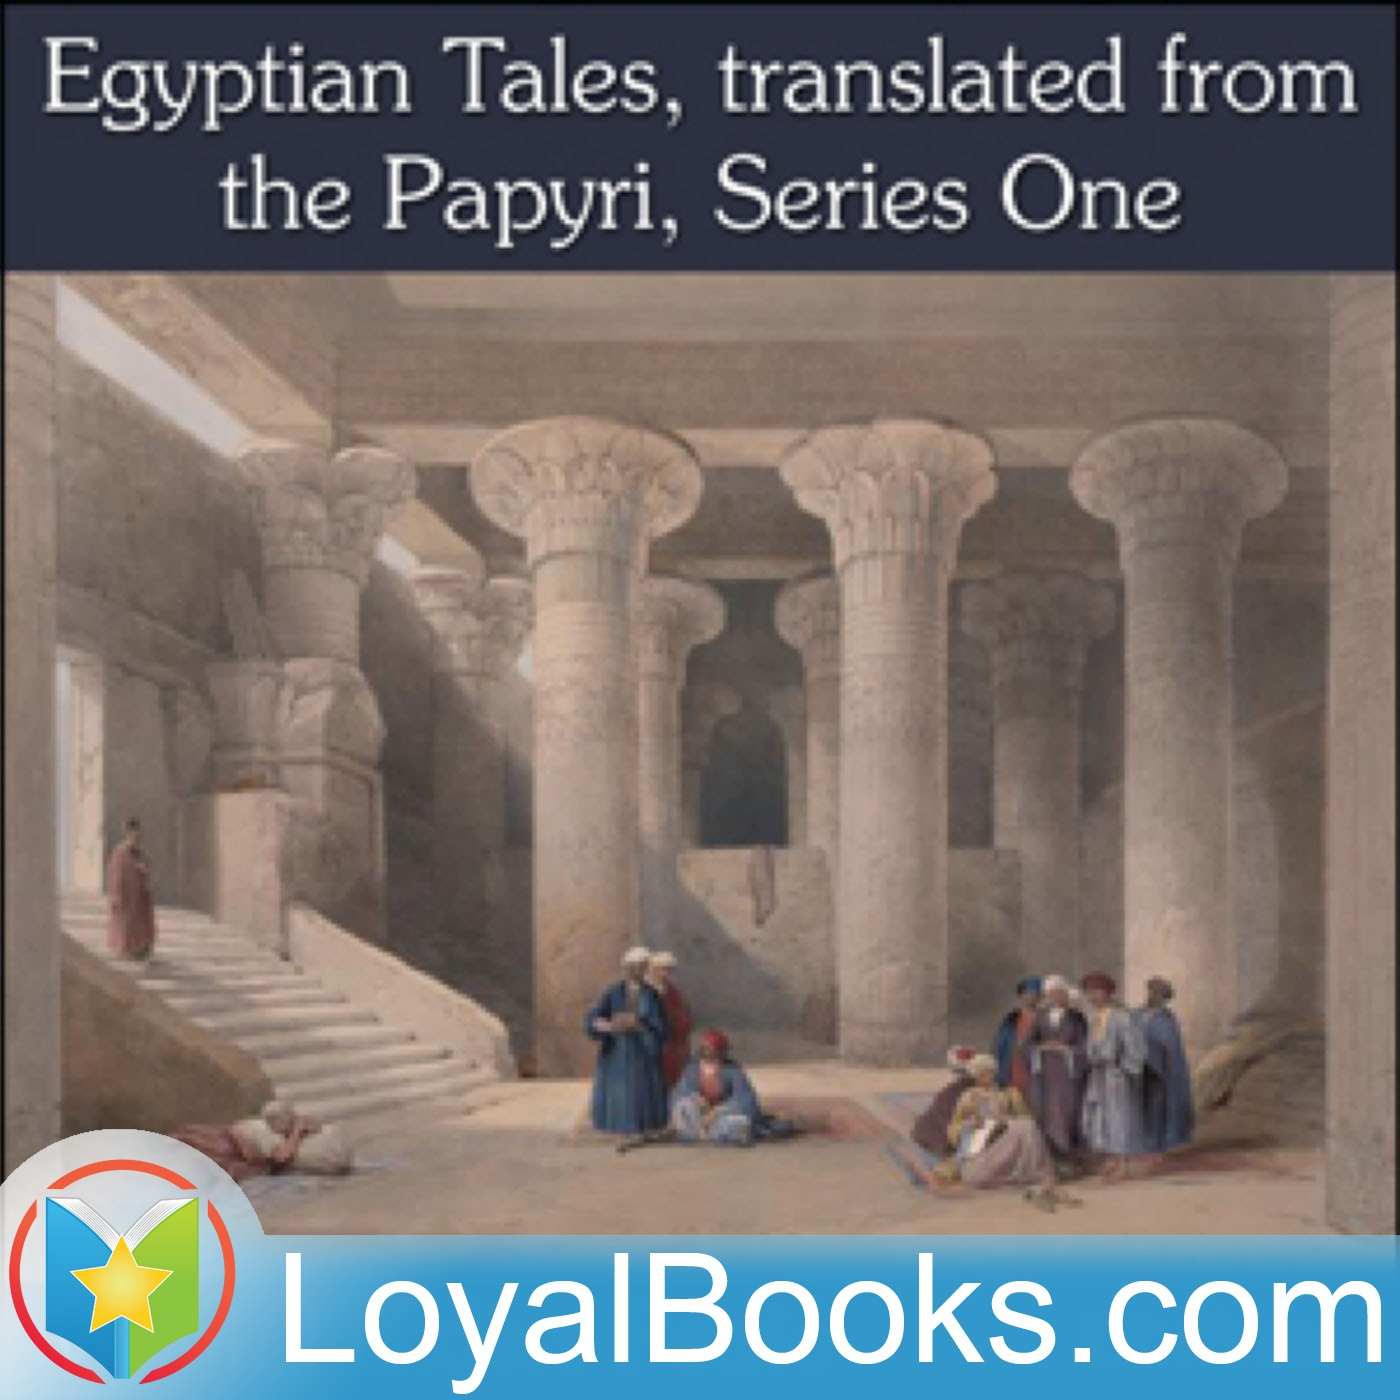 <![CDATA[Egyptian Tales, translated from the Papyri, Series One by W. M. Flinders Petrie]]>